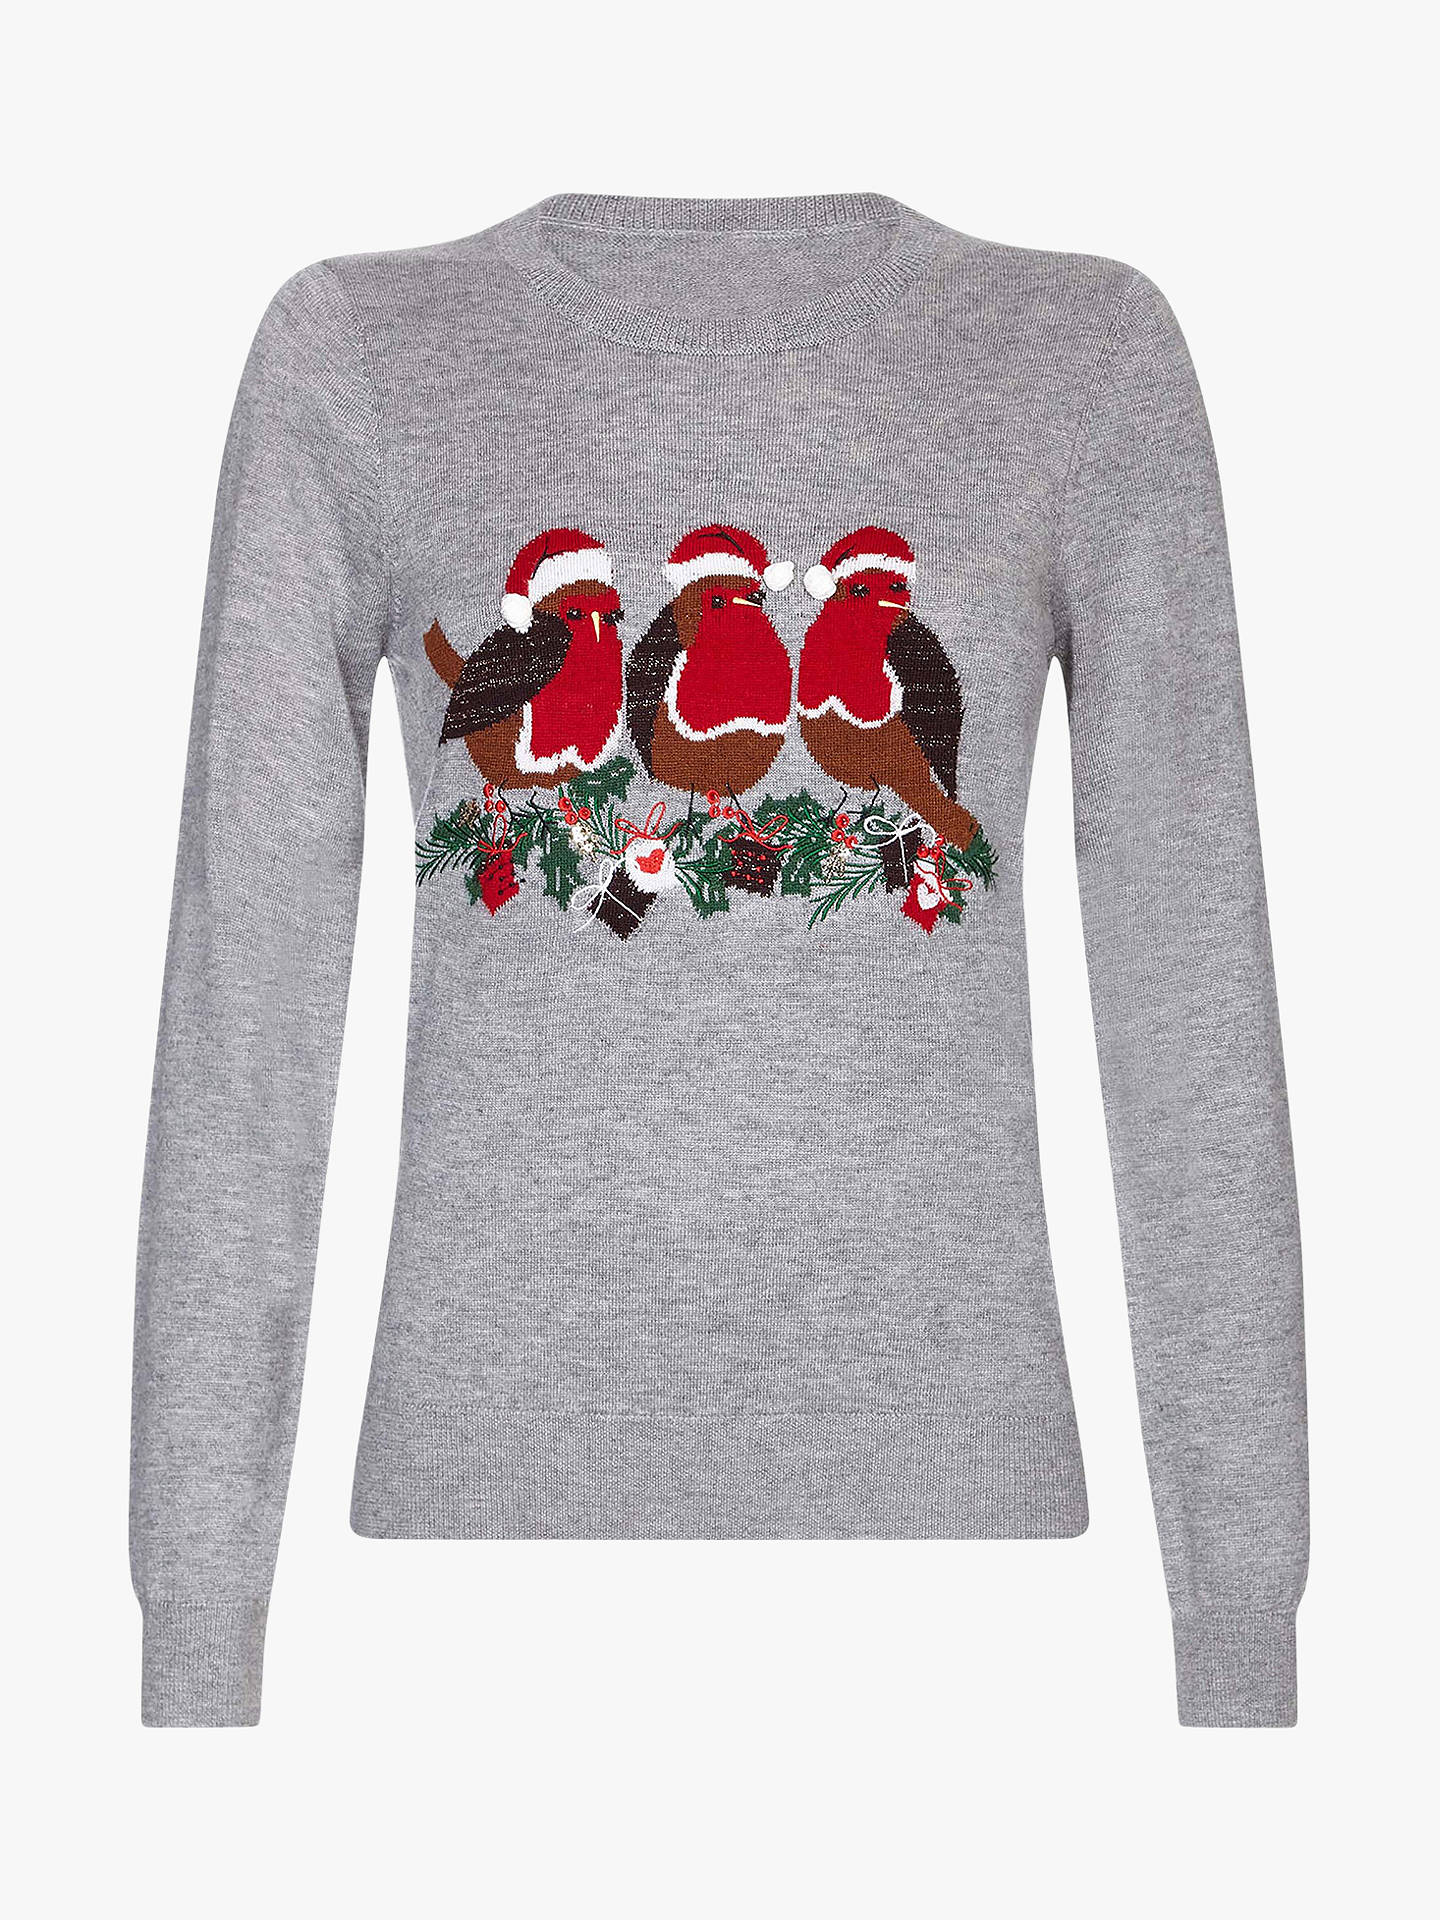 Buy Yumi Sequin Robin Christmas Jumper, Marl Grey, S Online at johnlewis.com